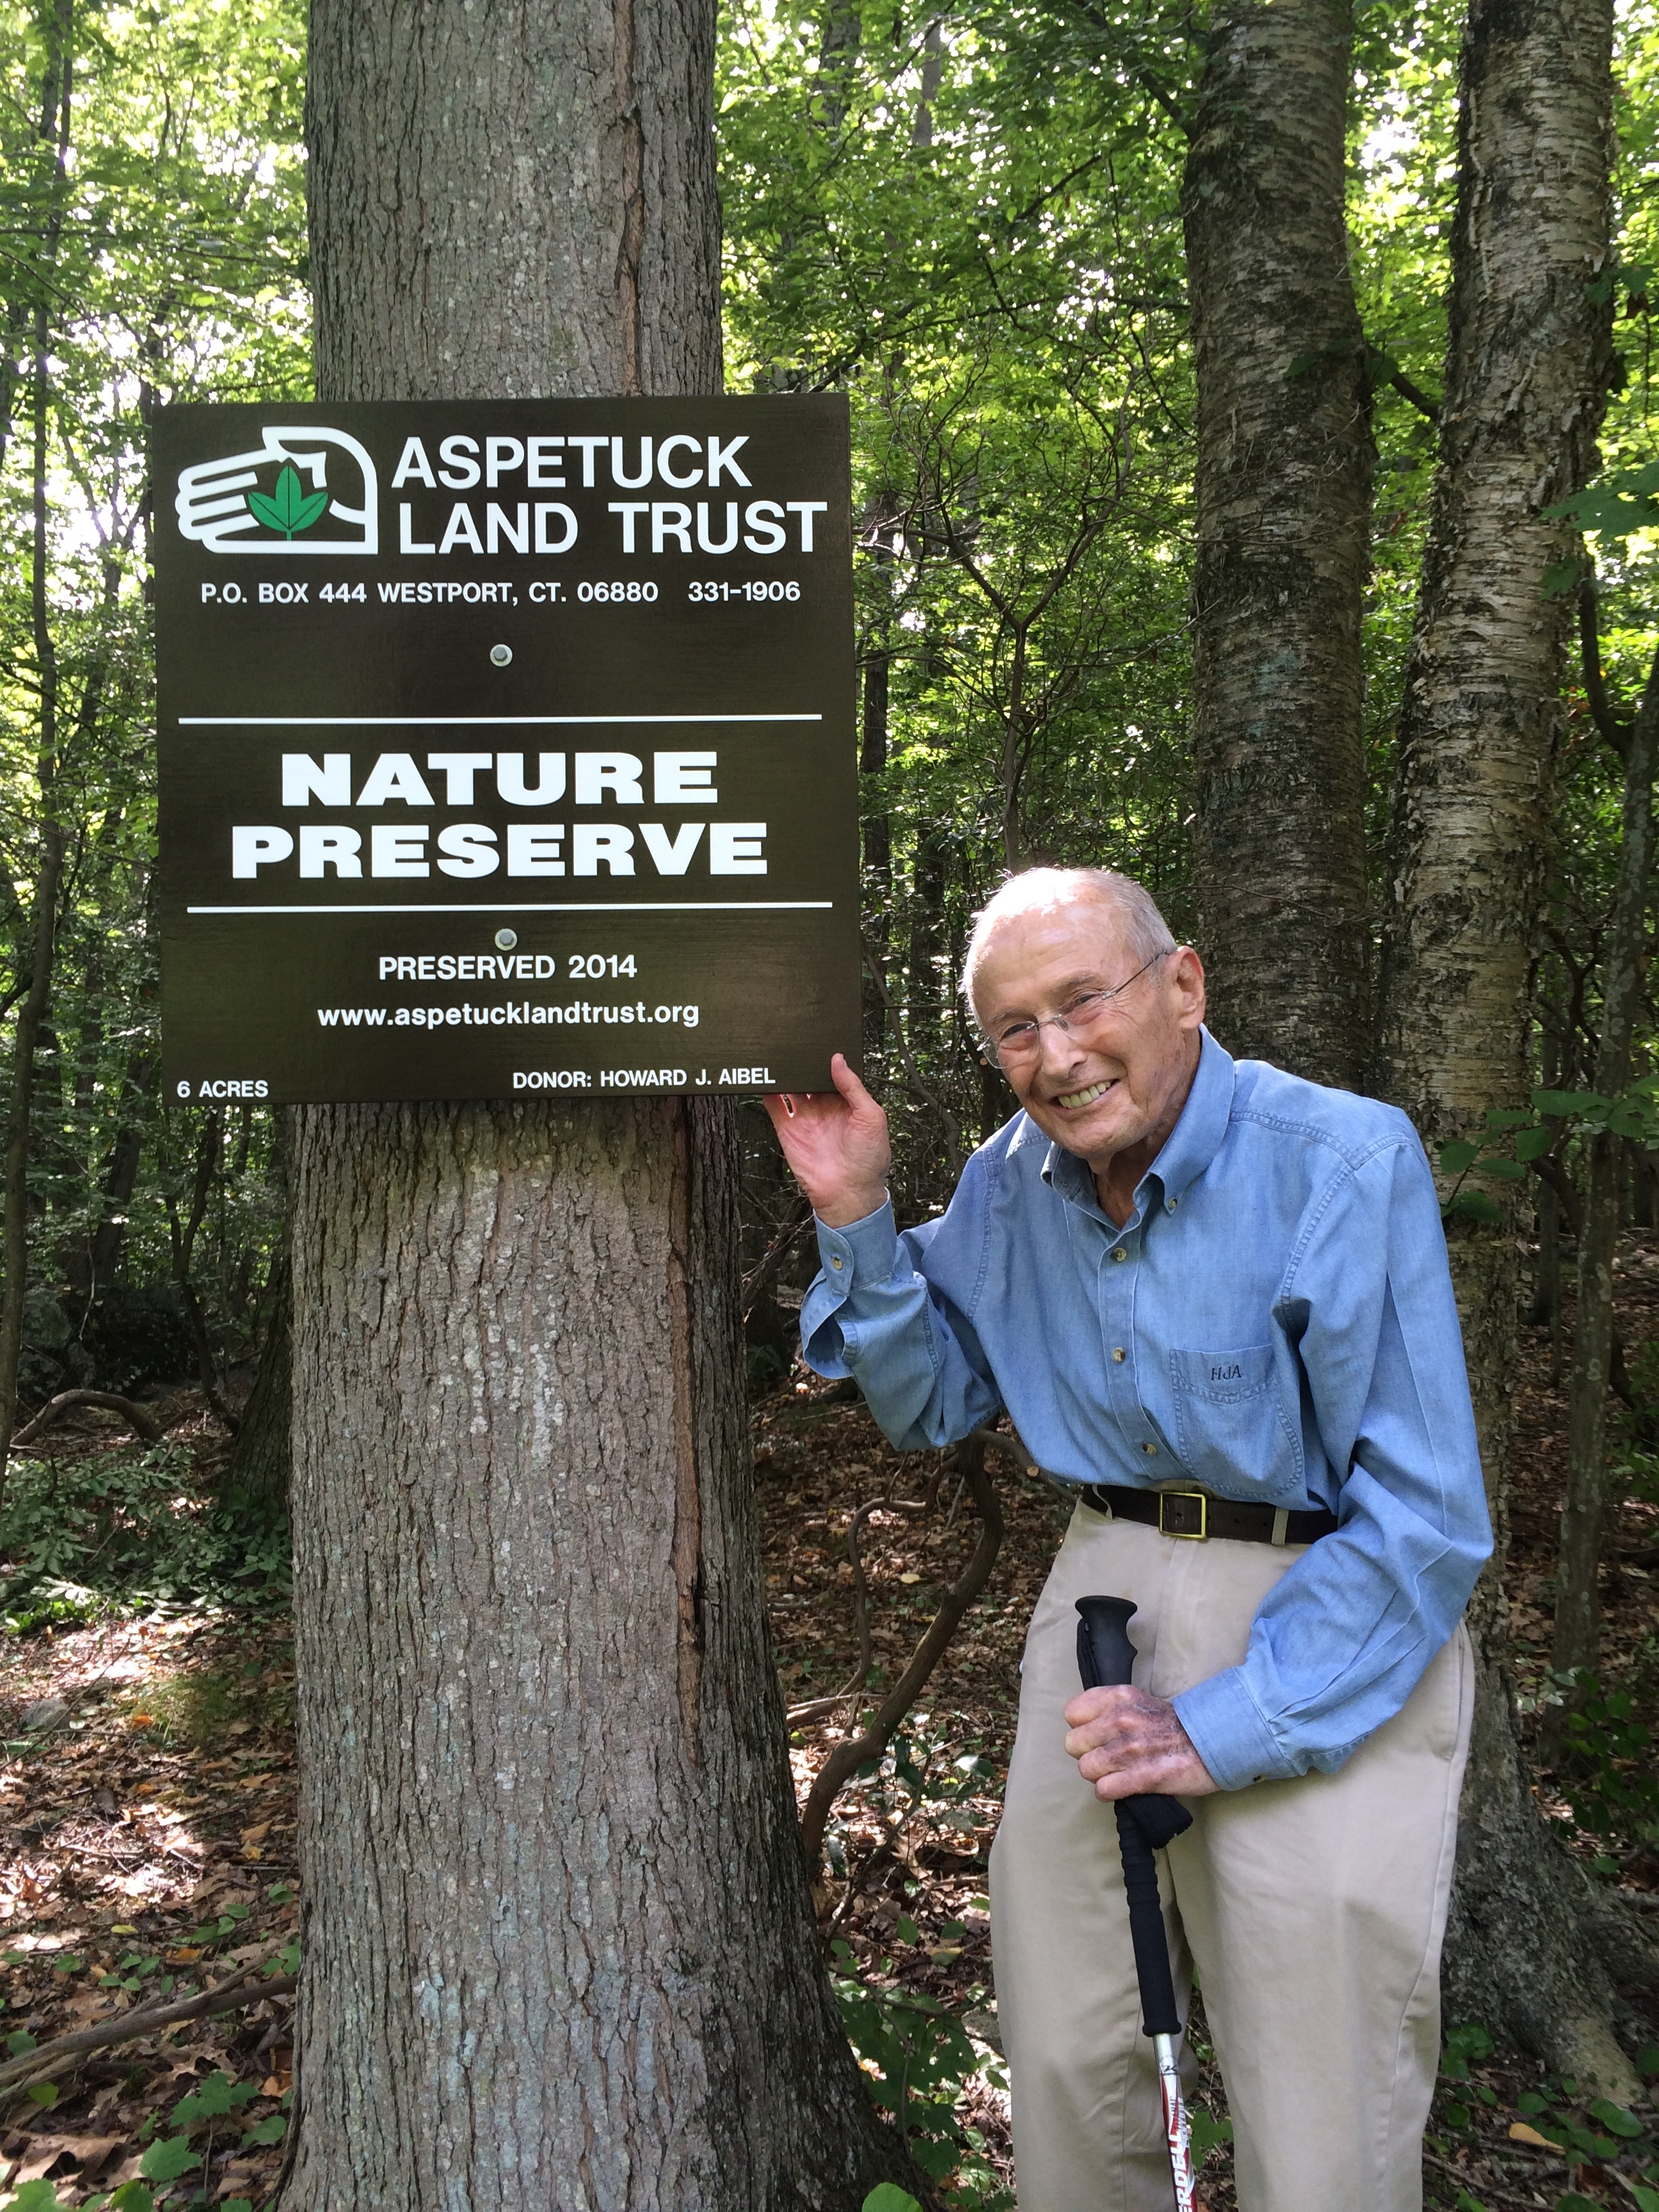 Gift of Land - I donated 6 acres of land to Aspetuck Land Trust to preserve the woodlands which inspired my wife and me to move to Weston many years ago. I also wanted to support the land trust's efforts to take care of the donated property... Read MoreHoward Aibel, Weston